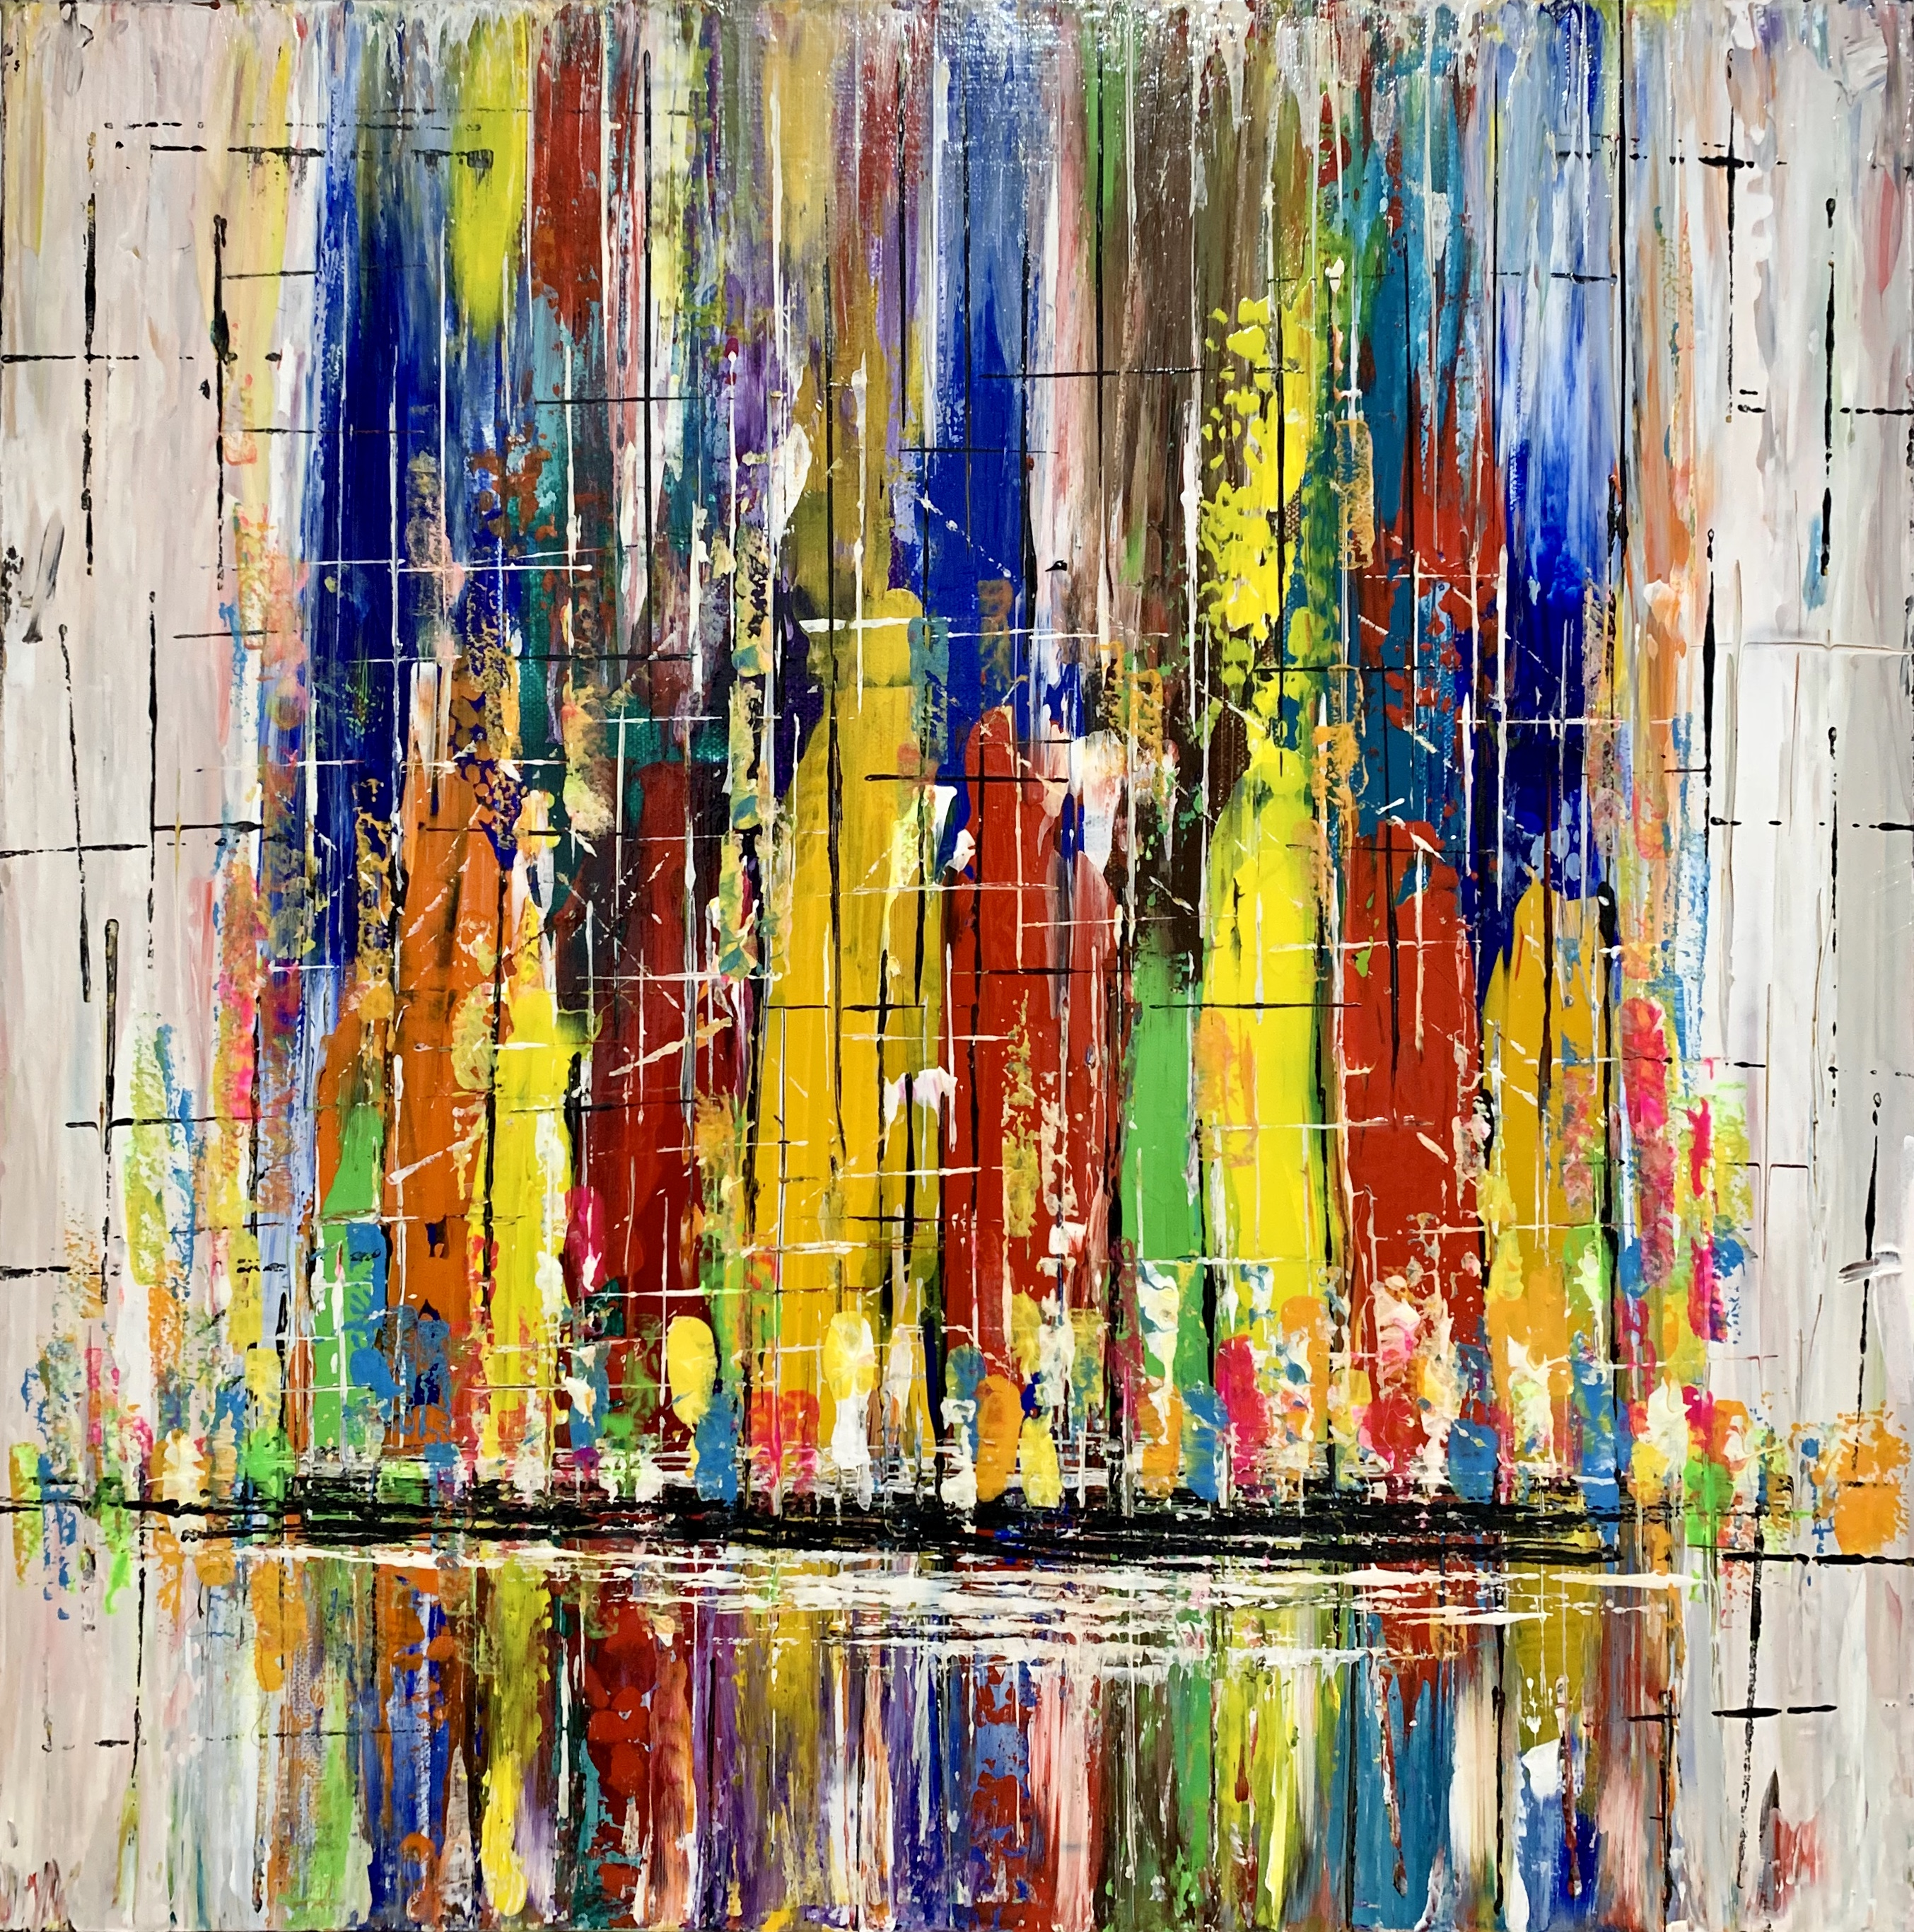 Abstract art depicting the liveliness of a downtown metropolis